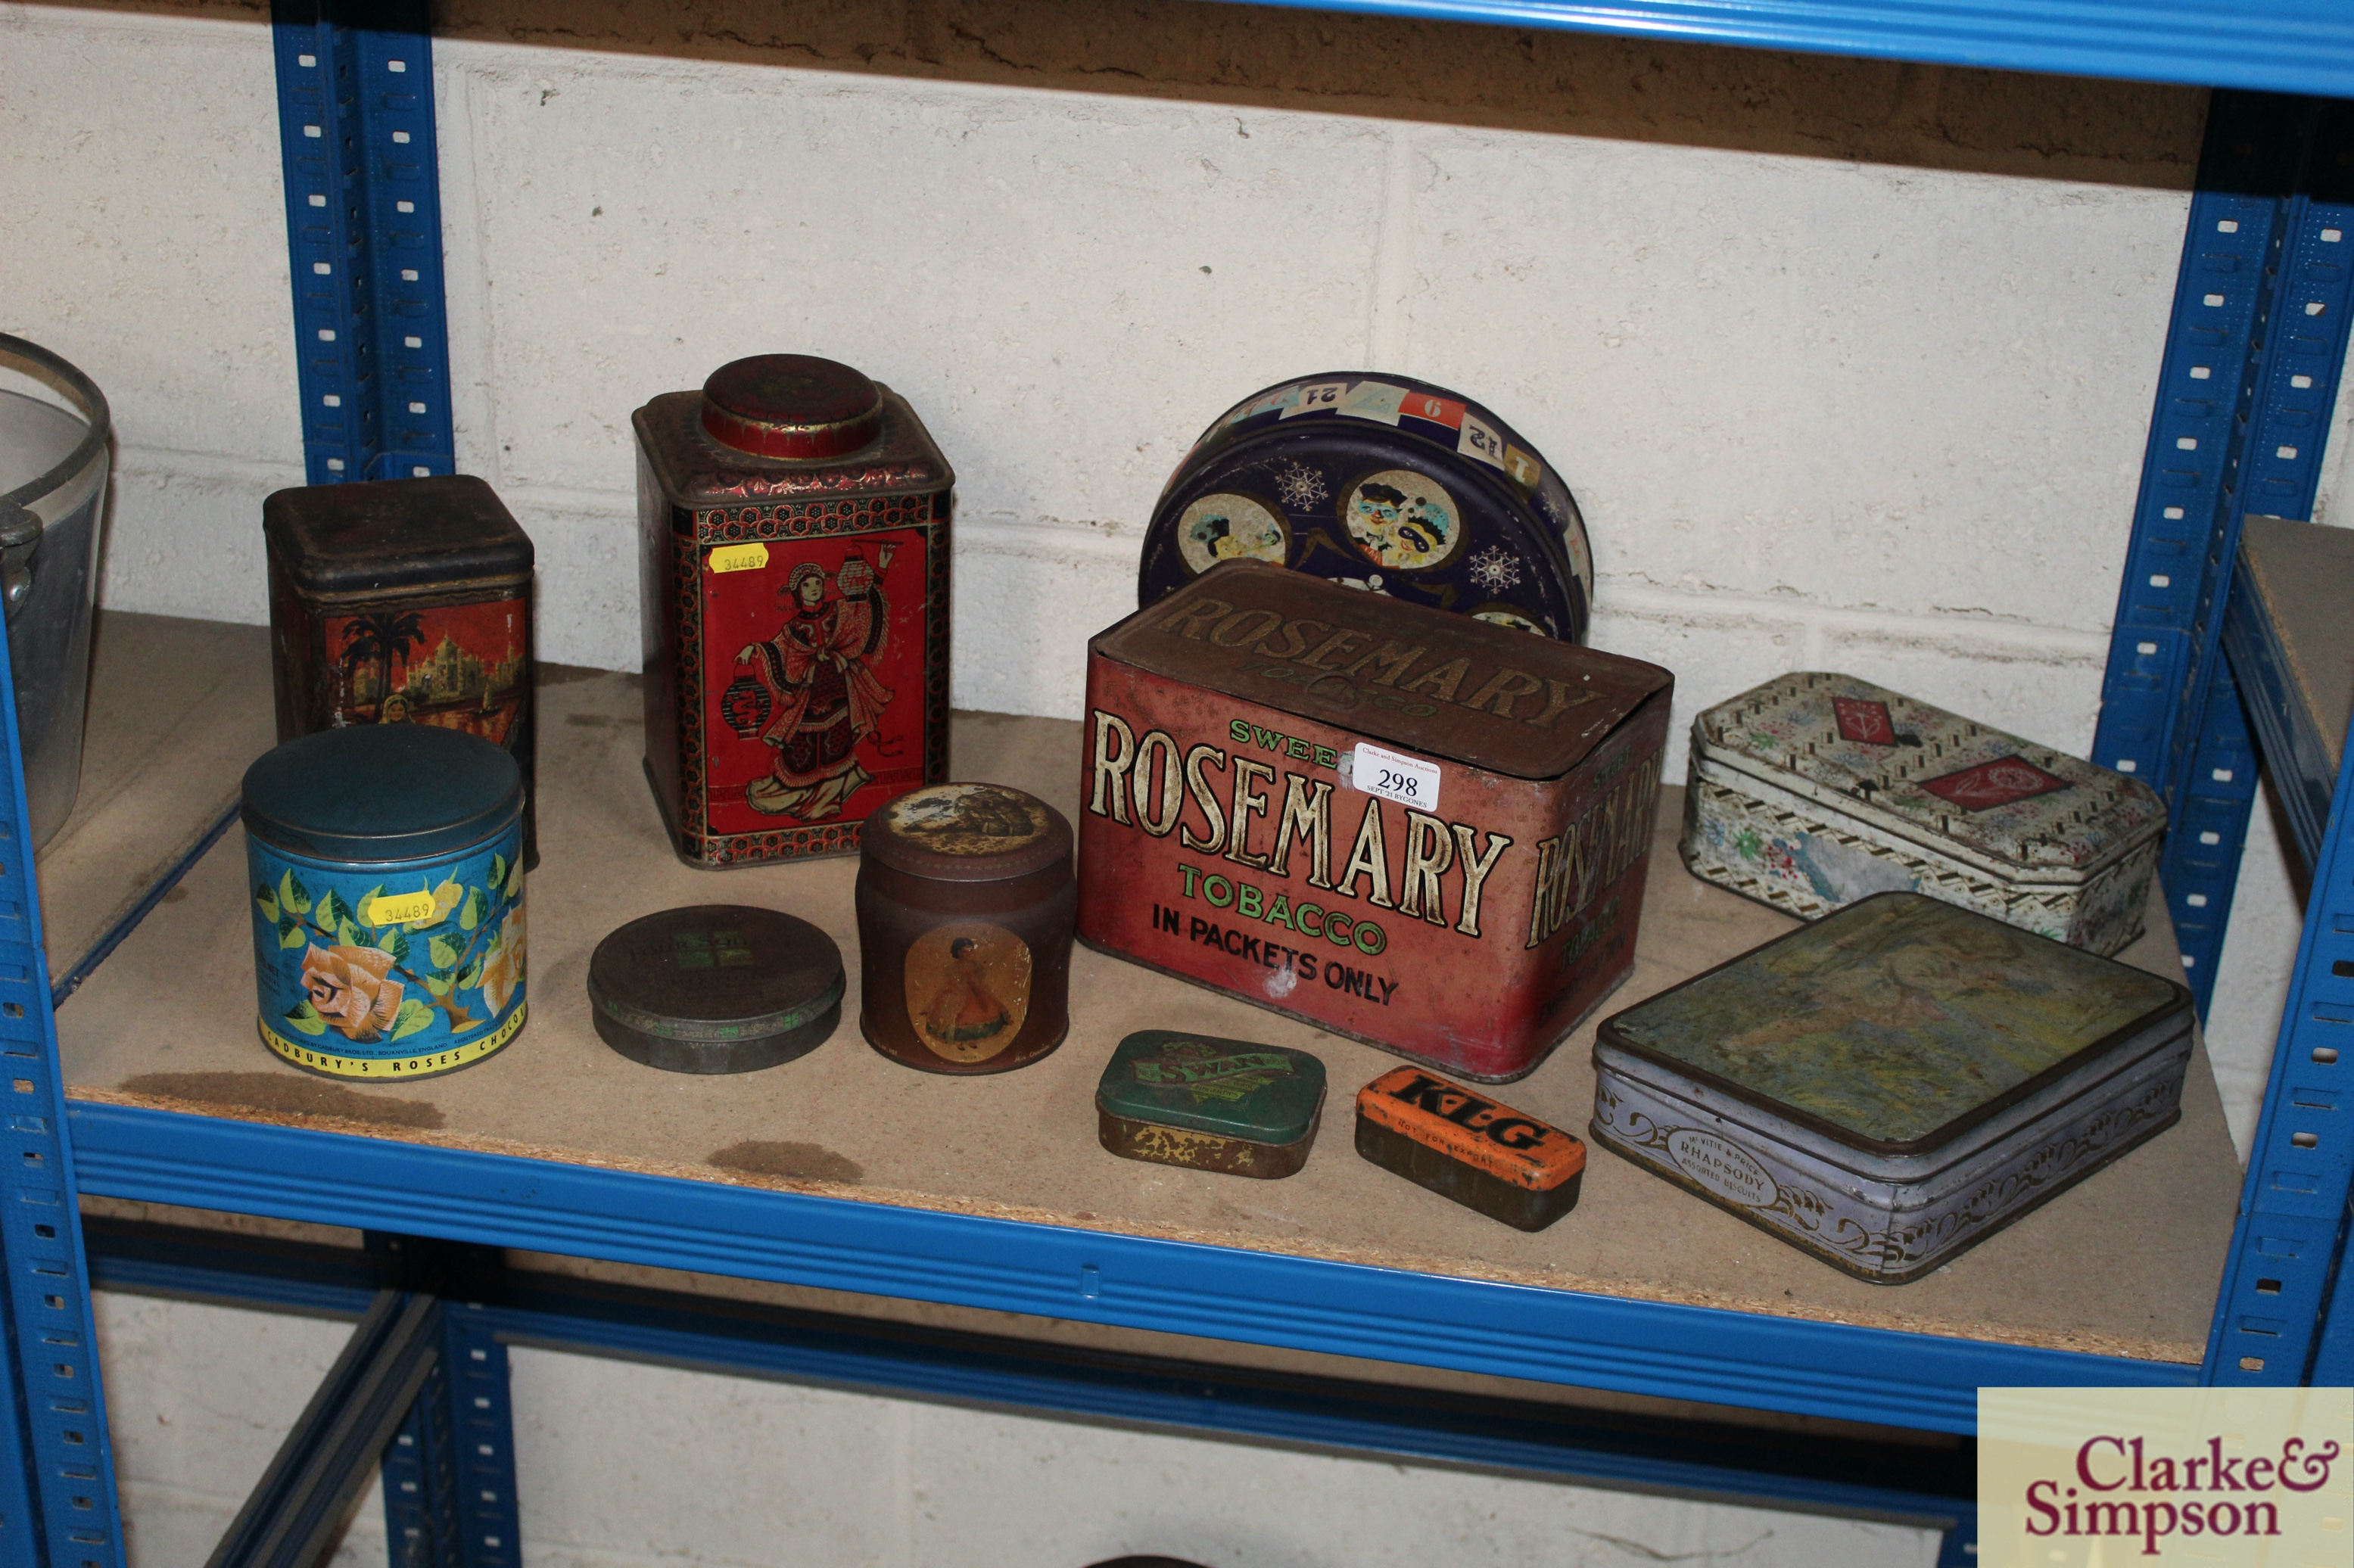 A collection of vintage advertising tins including